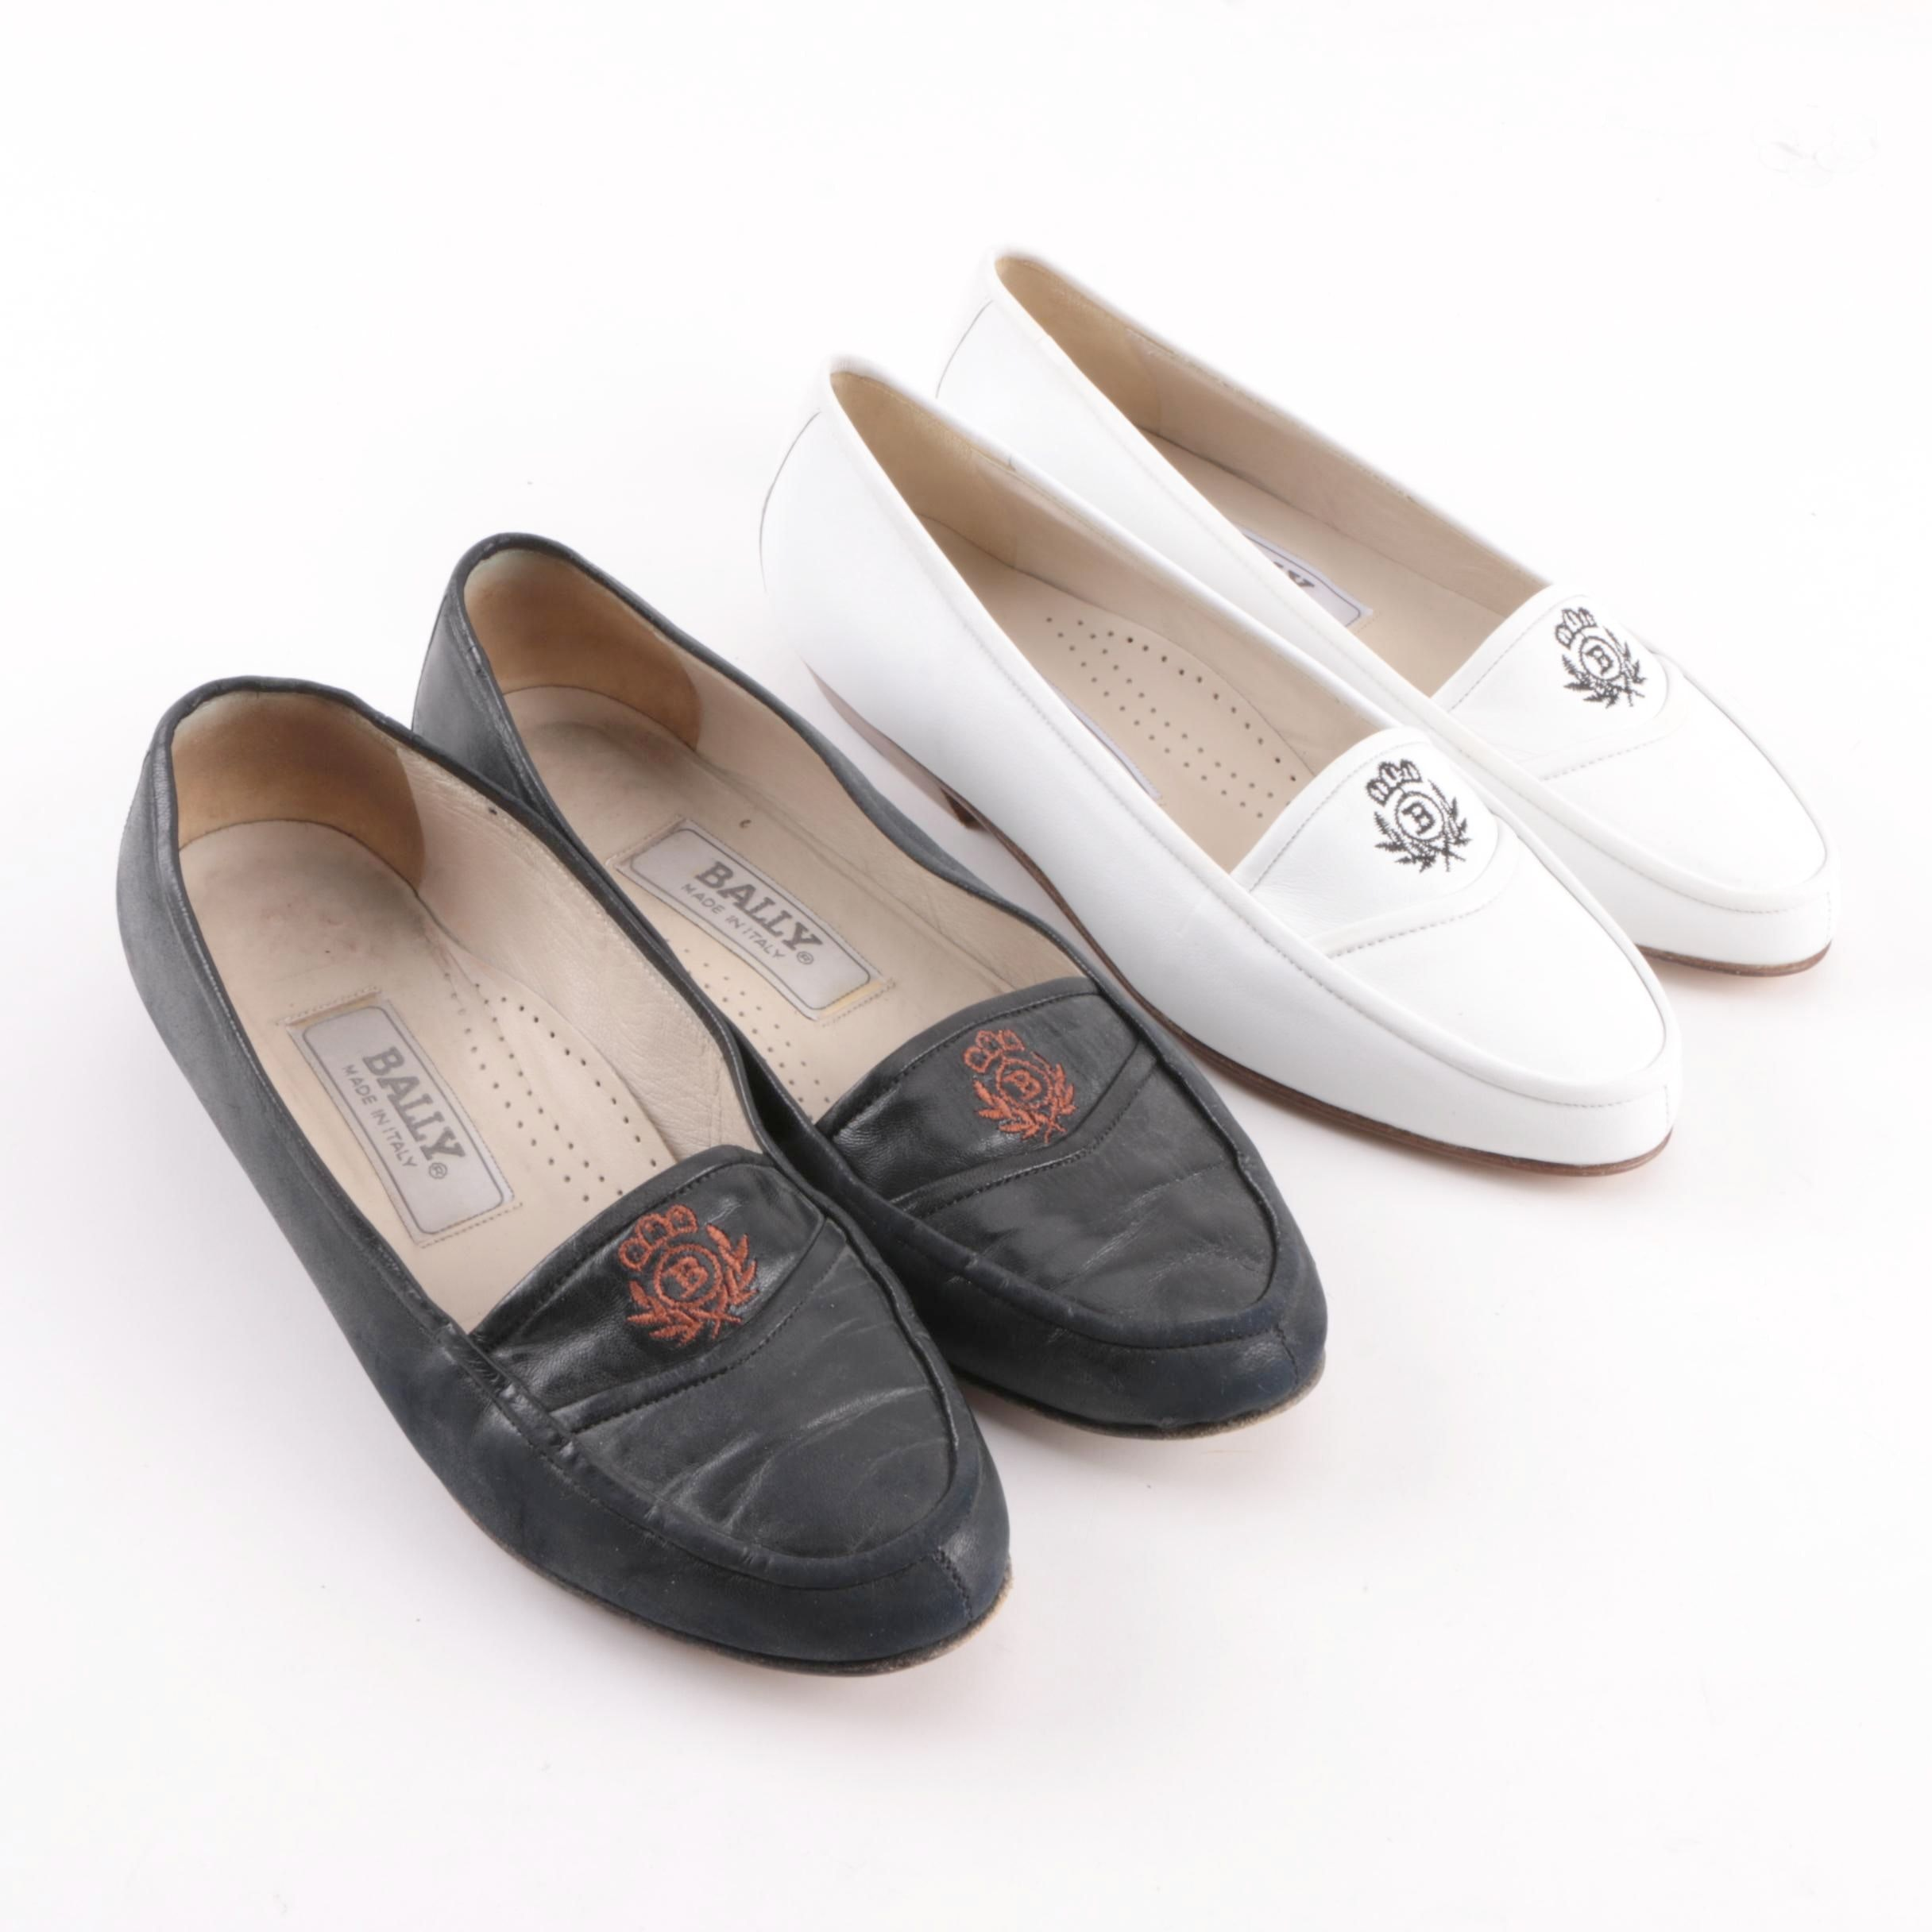 Women's Vintage Bally Leather Loafers with Embroidered Logo